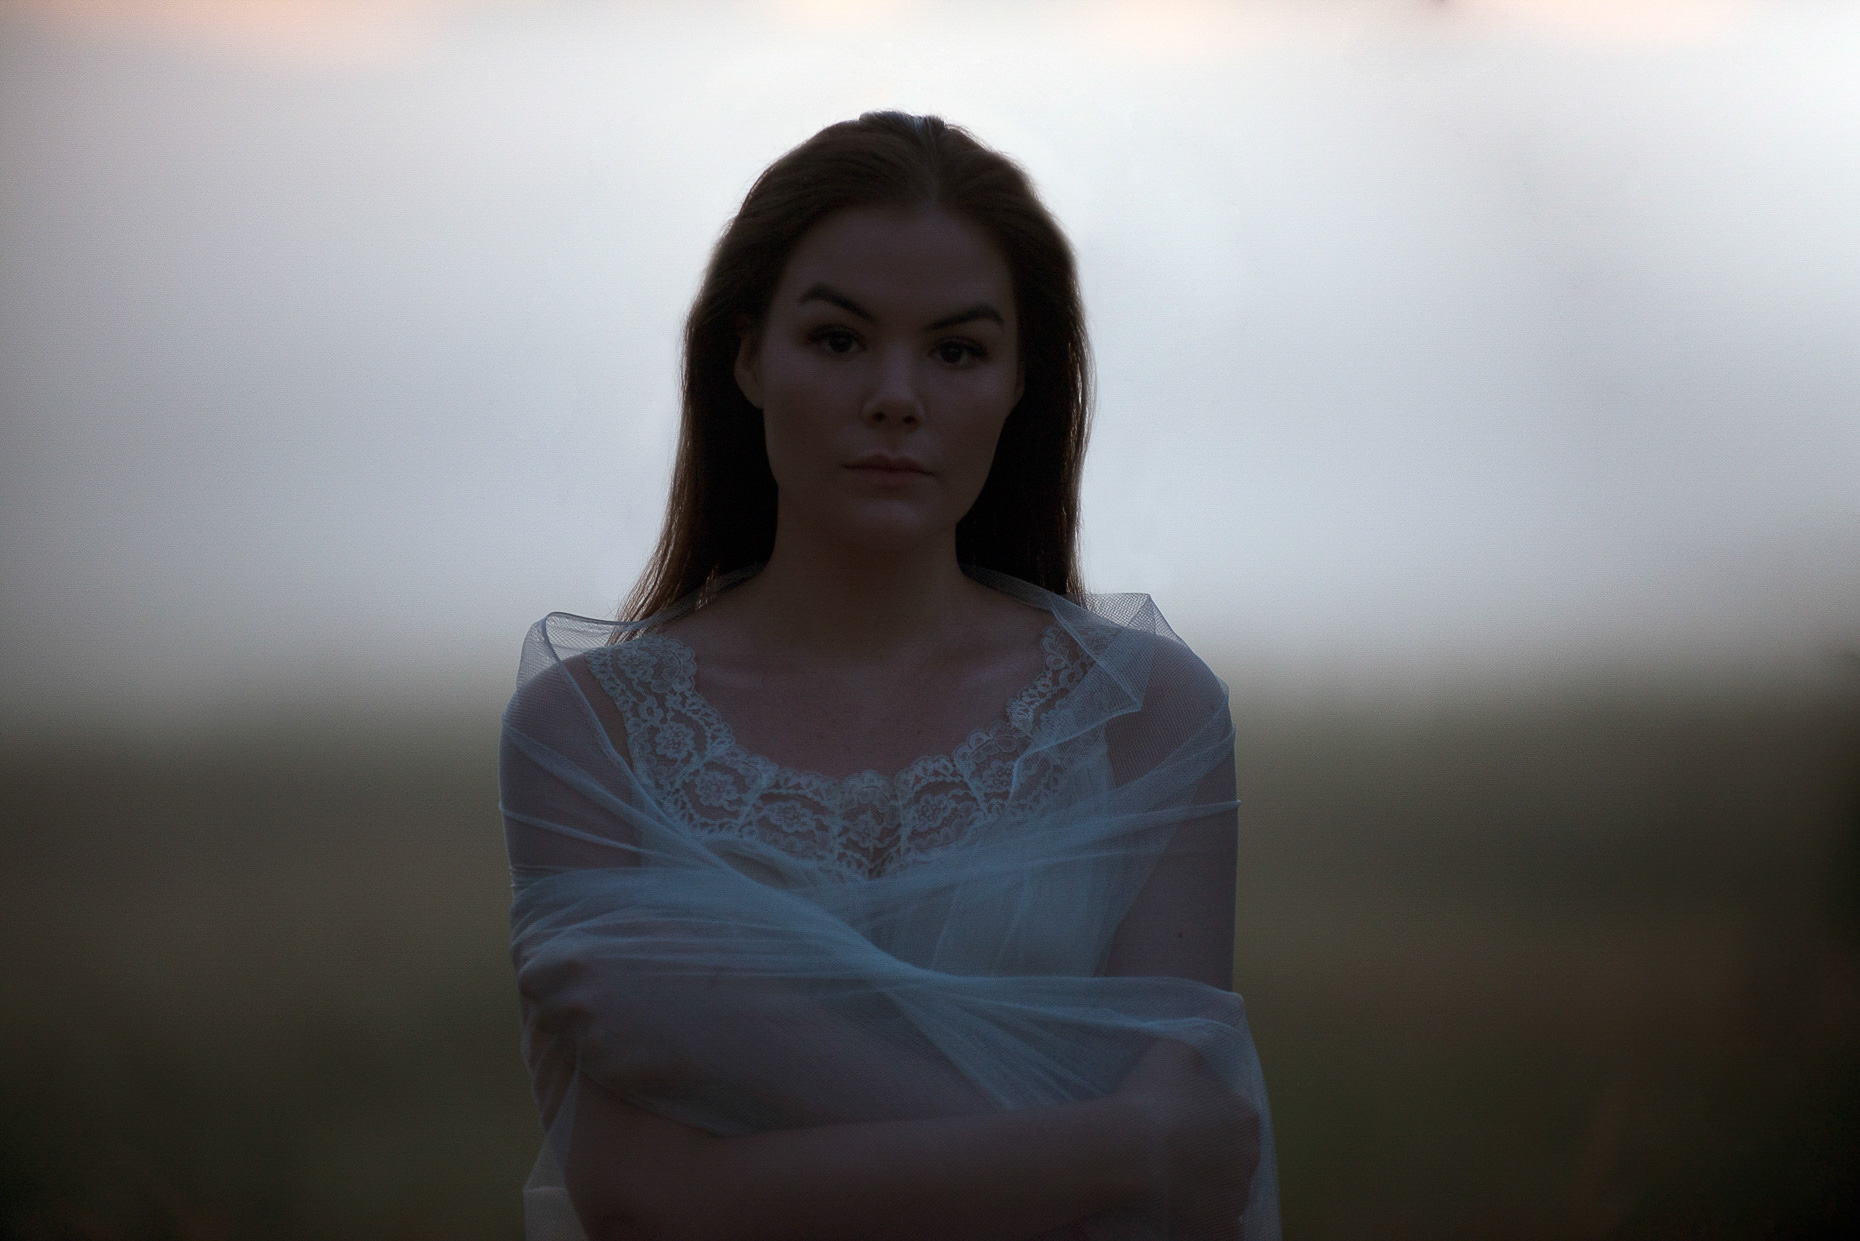 Portrait at dawn white dress concept photograph art ghost